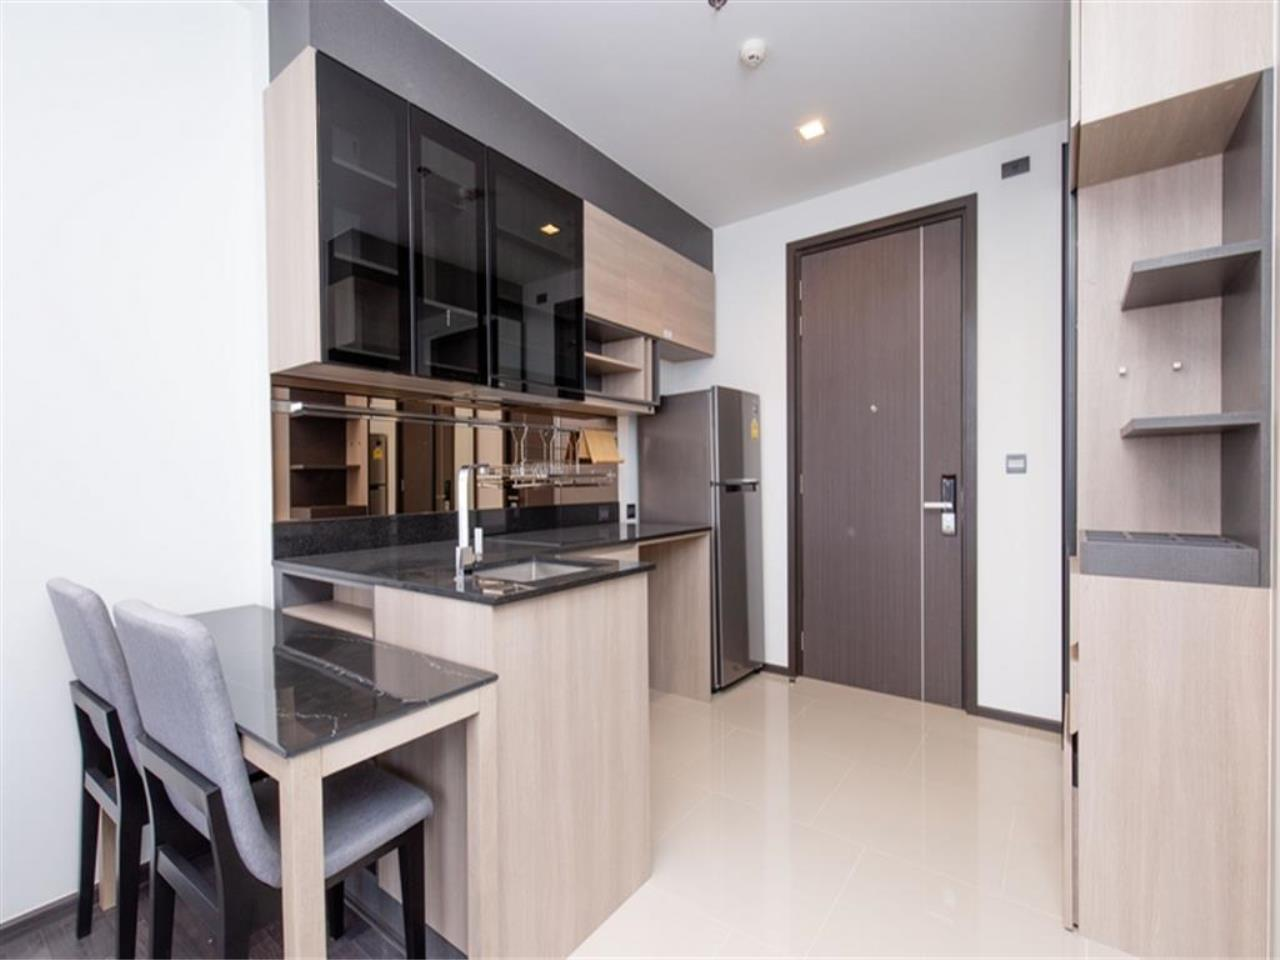 Plus Property Agency's Rent : CD188861 THE LINE ASOKE-RATCHADA Condominium New Petchburi - Rama 9 Bangkok 10